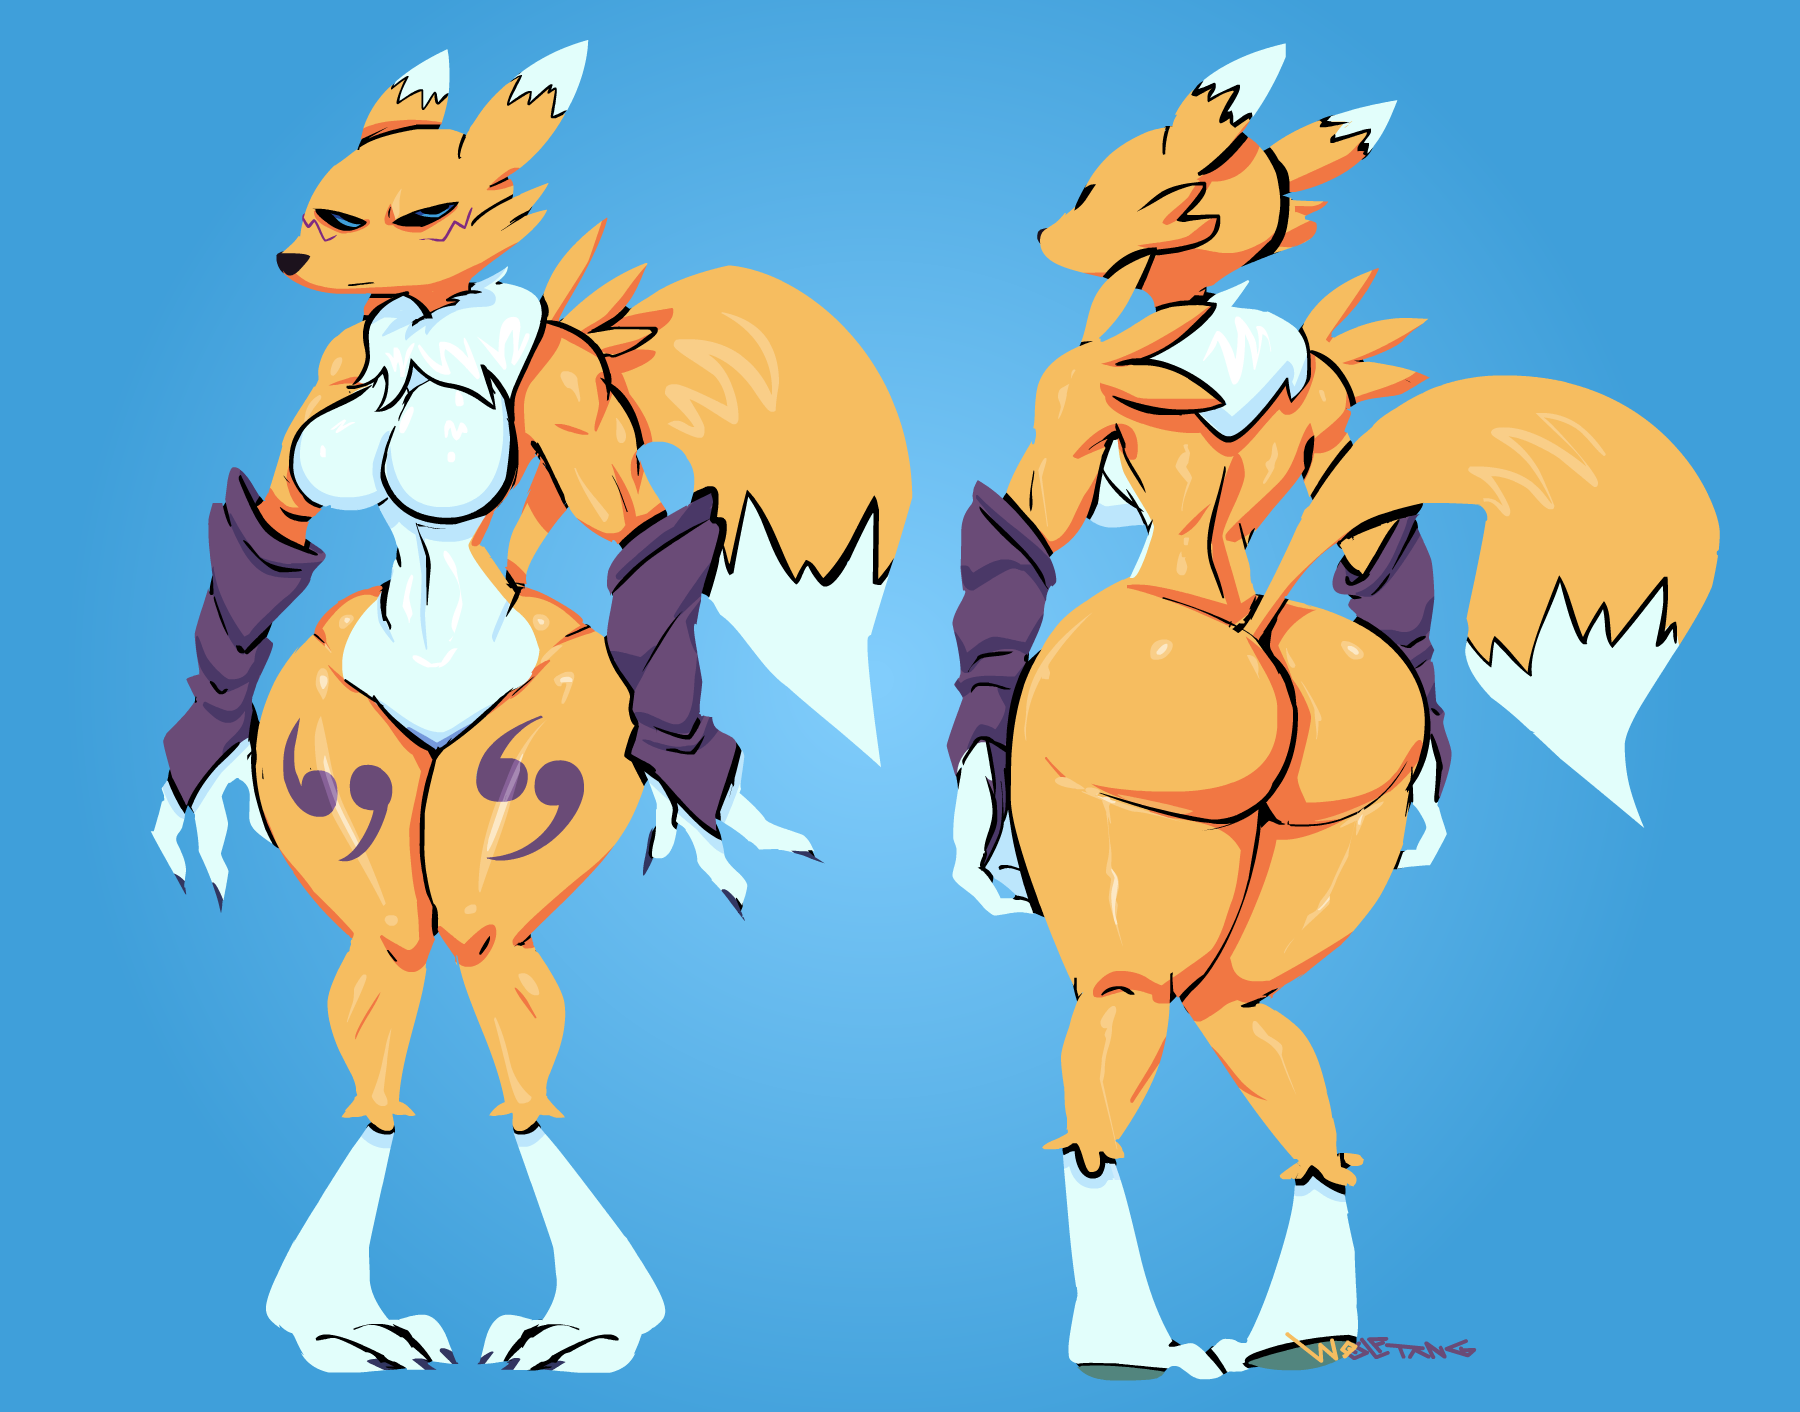 e621 2017 angry angry_face anthro athletic big_breasts big_butt black_nose black_sclera blue_background blue_eyes breasts butt canine chest_tuft claws digimon digital_media_(artwork) dipstick_tail facial_markings featureless_breasts featureless_crotch female front_view fur hi_res looking_at_viewer mammal markings midriff mostly_nude multicolored_fur multicolored_tail muscular navel nude rear_view renamon simple_background sleeves standing thick_thighs tuft two_tone_fur under_boob voluptuous white_fur white_tail wide_hips wolftang yellow_fur yellow_tail